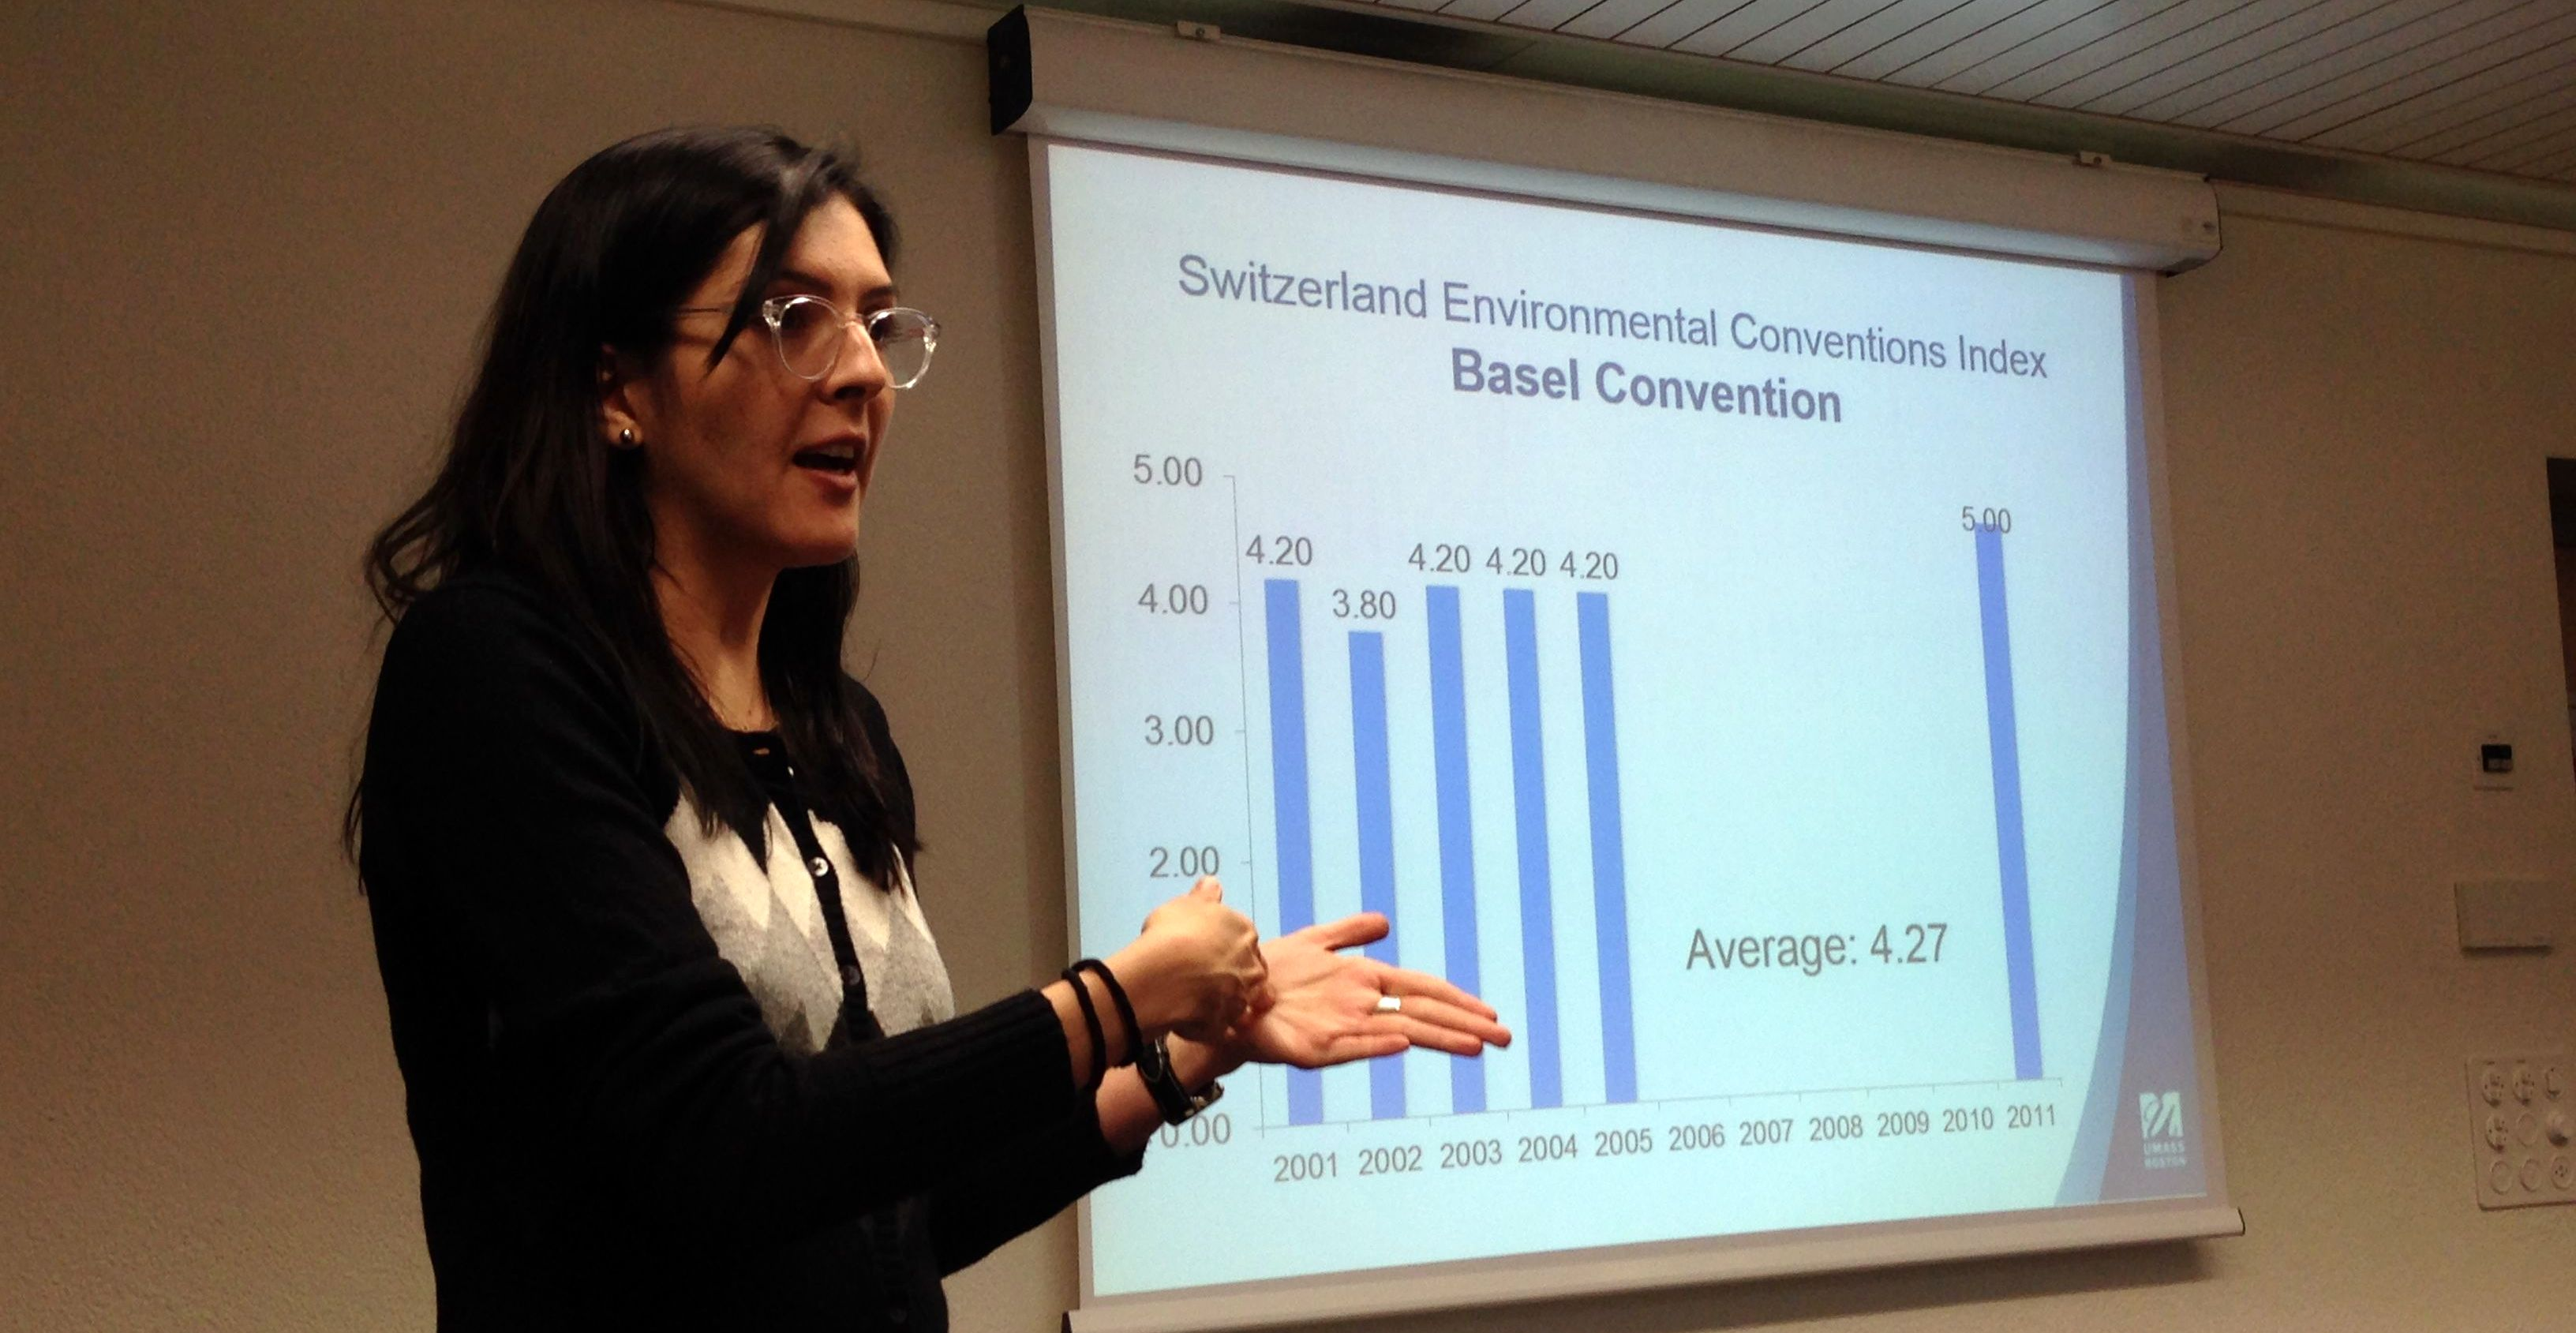 McCormack Grad student delivers presentation on global environmental conventions